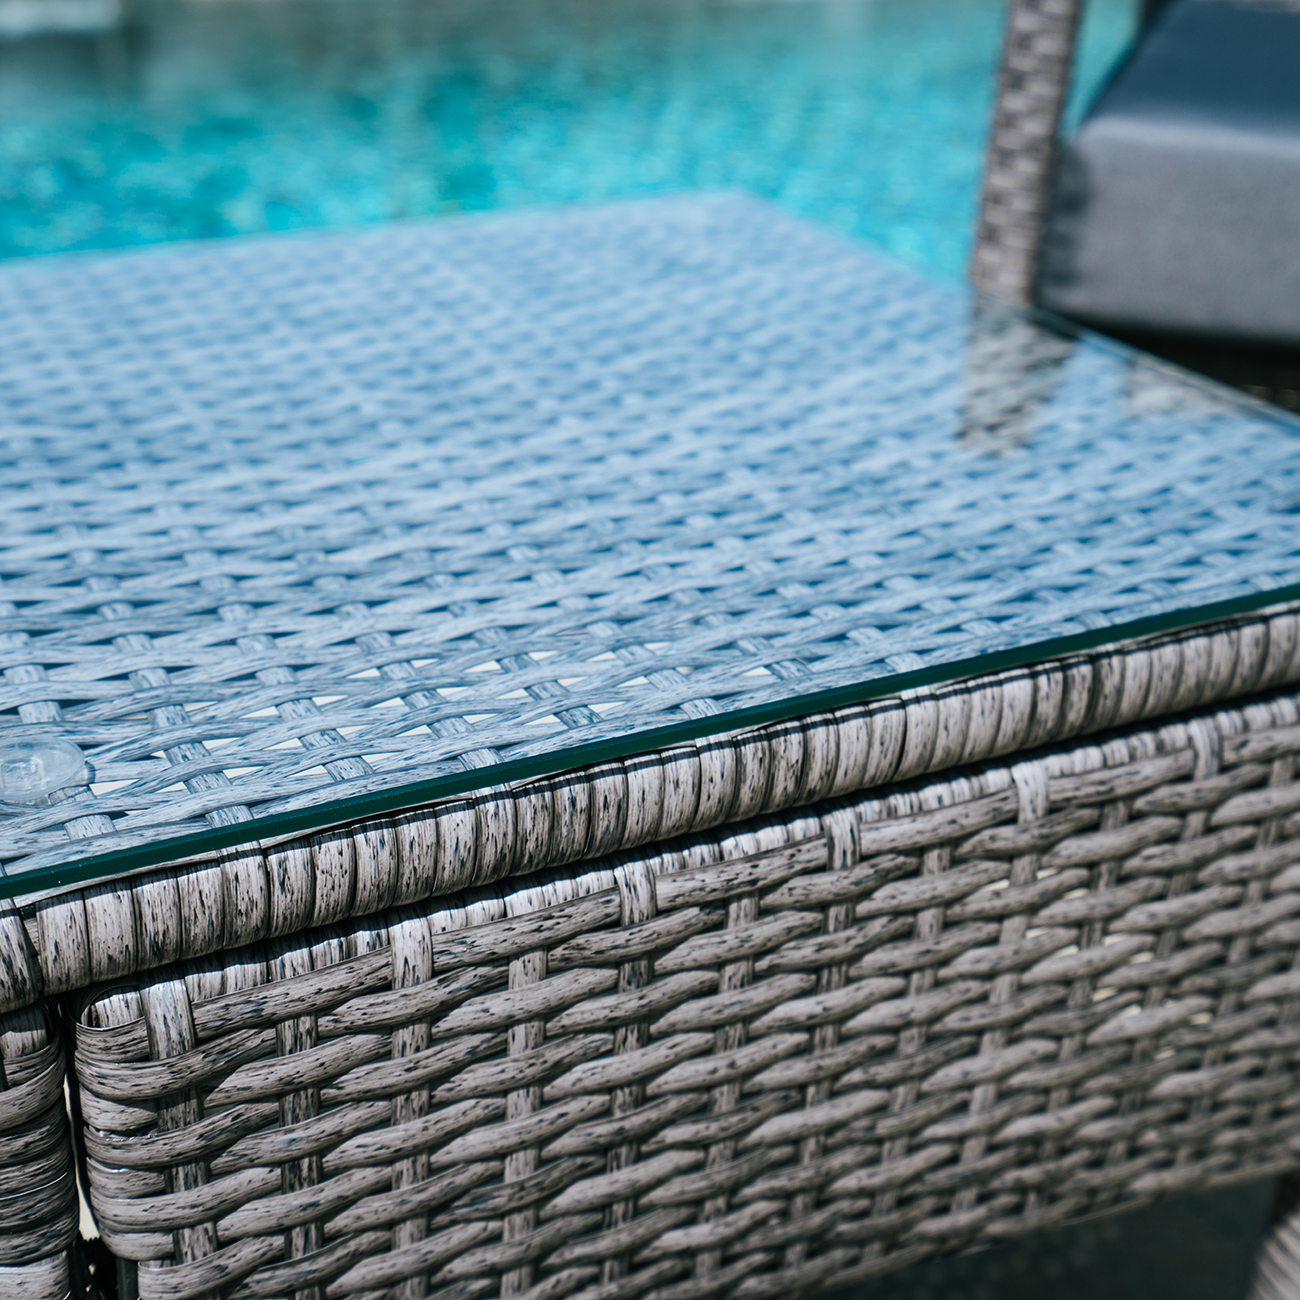 3-PCS-Outdoor-Rattan-Wicker-Patio-Chat-Chairs-amp-Table-Furniture-Set-Lounge thumbnail 11